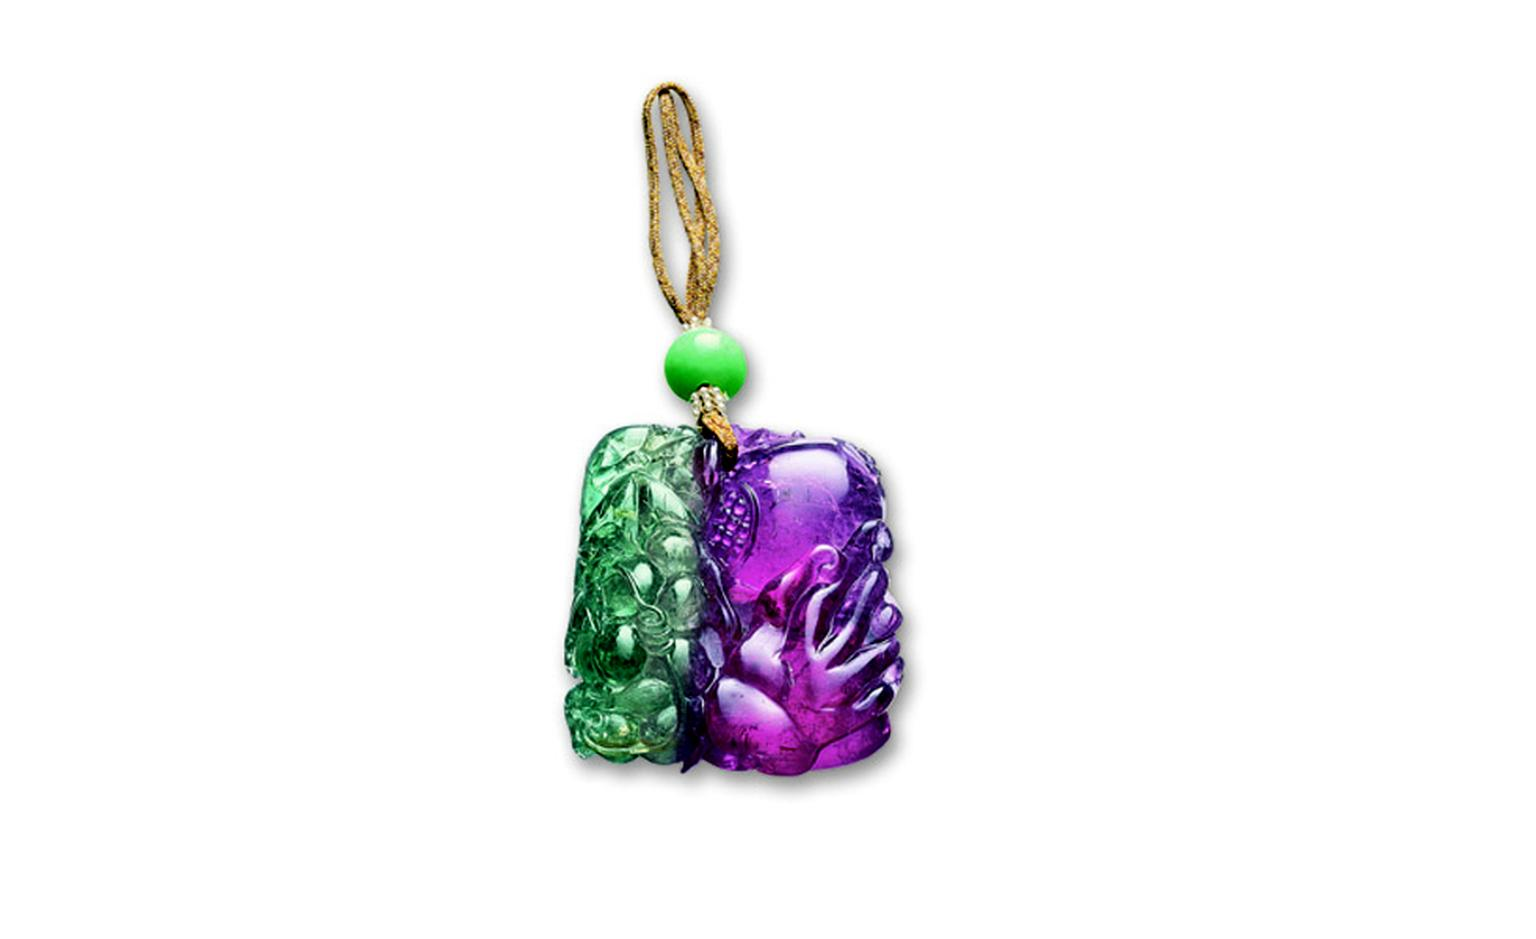 LOT 2518. Bi-coloured tourmaline and jadeite bead pendant, late quing dynasty EST 95,000 - 120,000 HKD. LOT SOLD 150,000 HKD